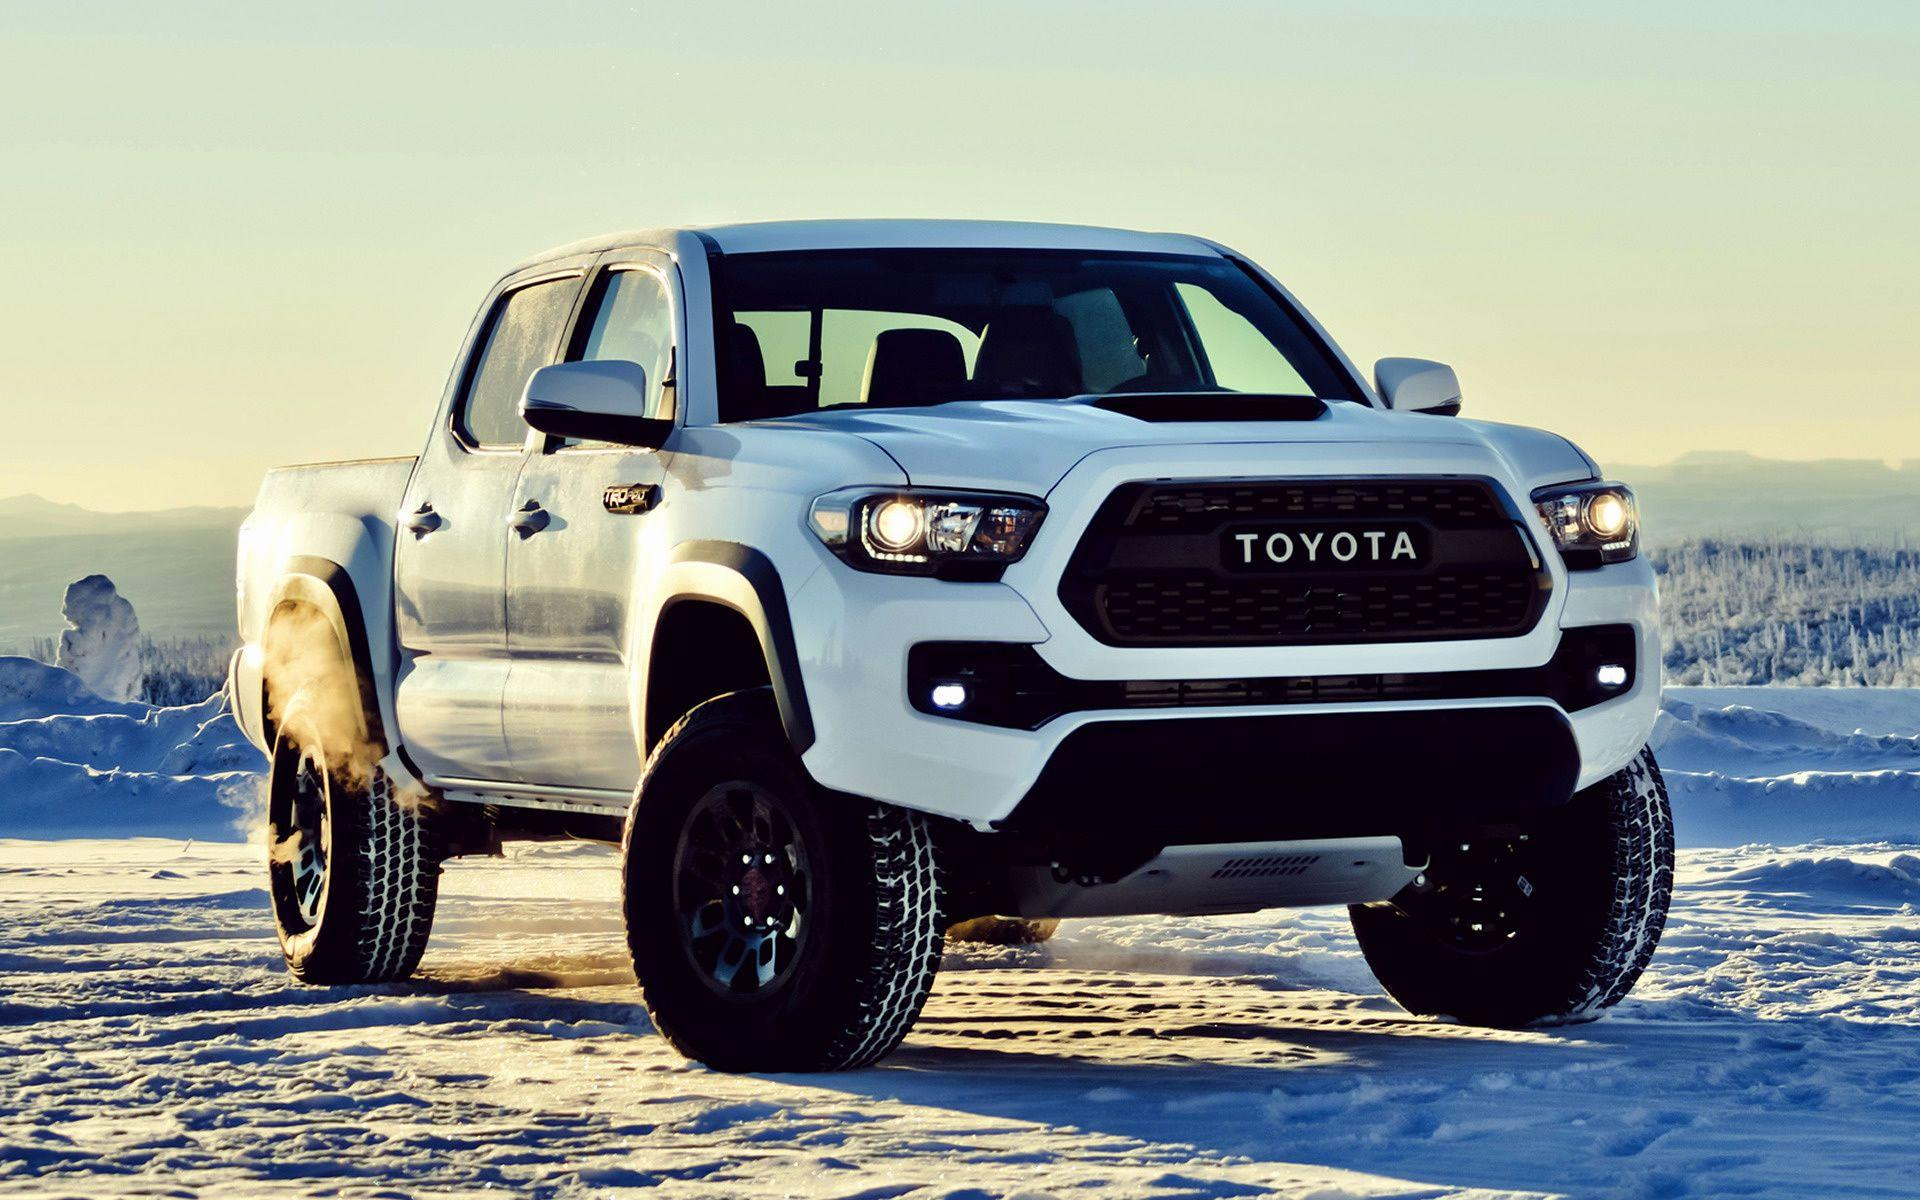 Toyota Tacoma TRD Pro Double Cab (2017) Wallpapers and HD Images ...